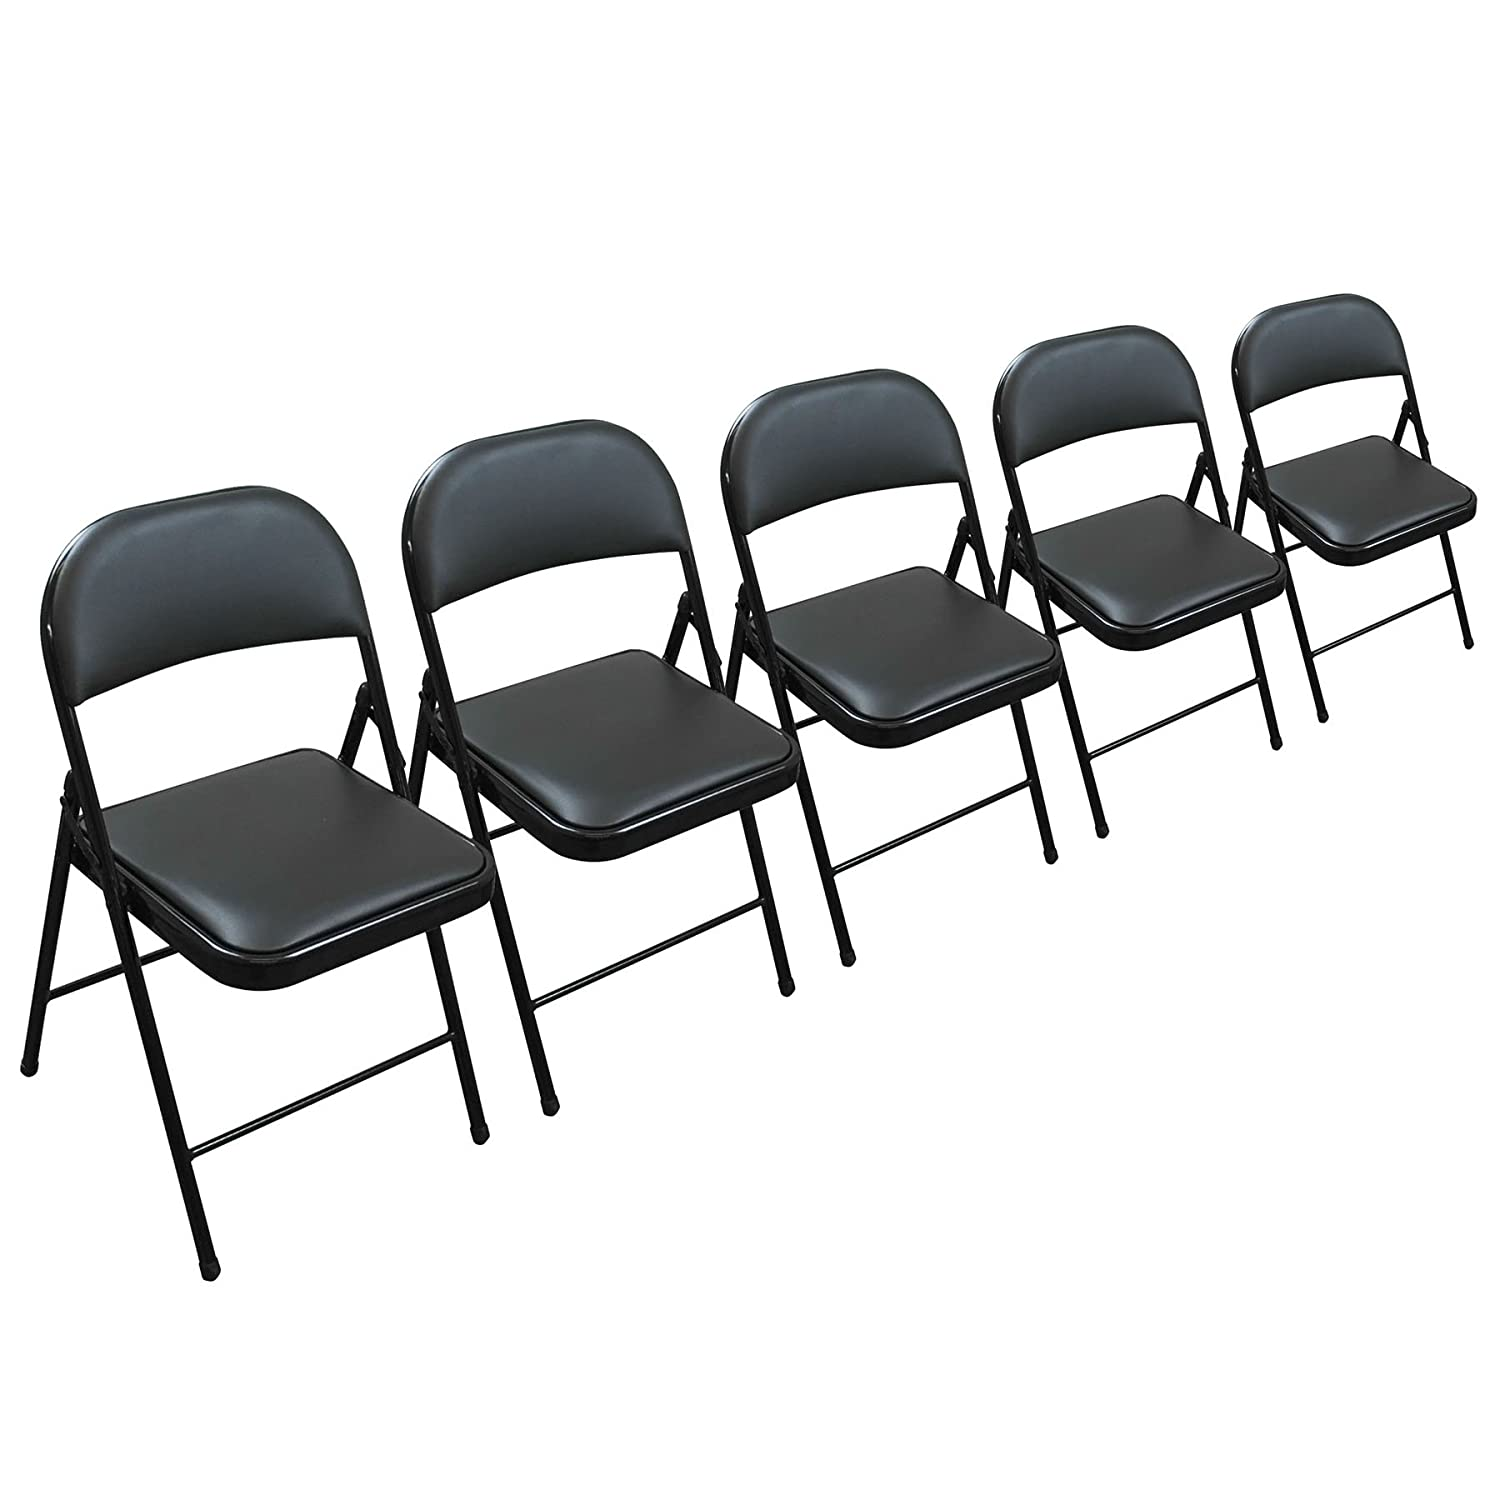 Folding Faux Leather Chair - Strong Steel Event Hall Seating or Temporary  Seat for Guests and Desks (5)